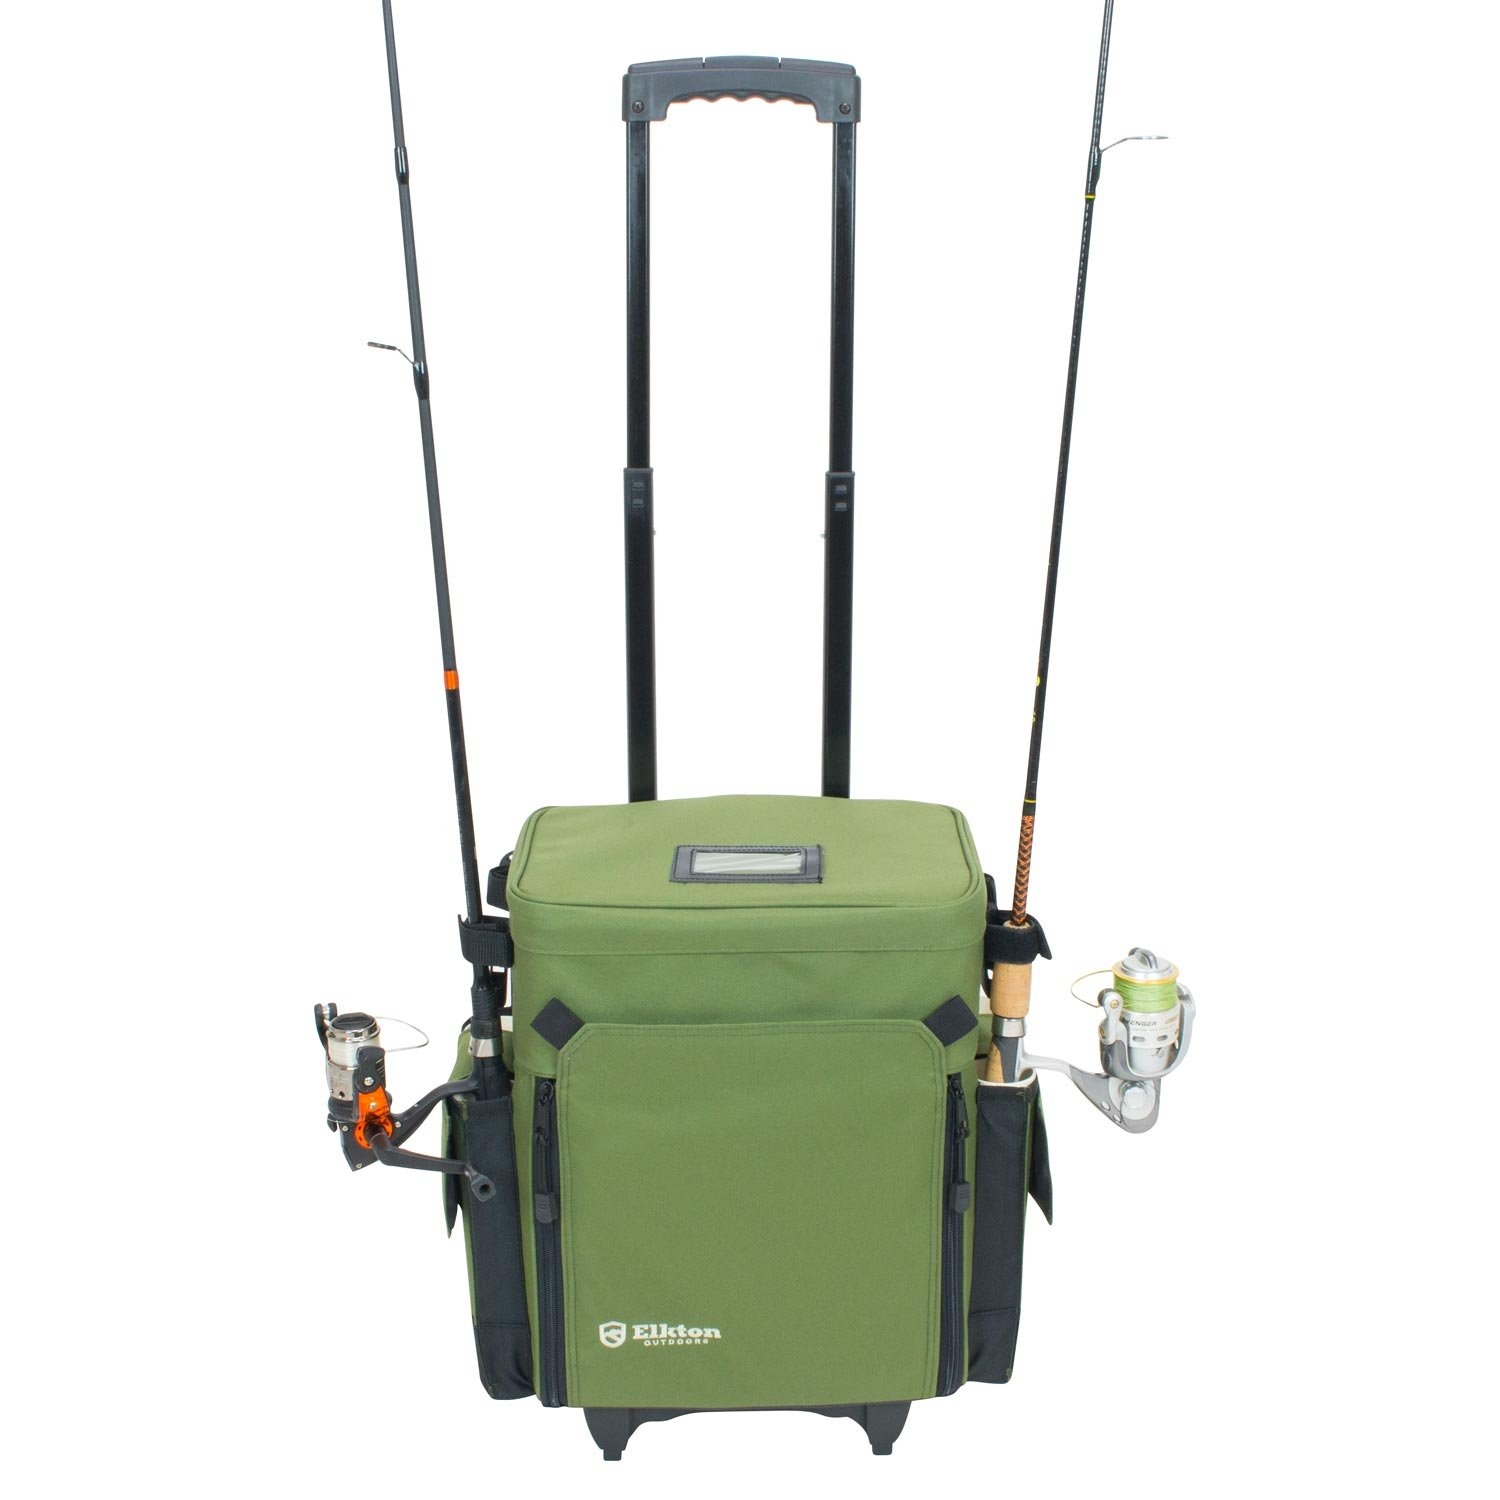 Elkton Outdoors Rolling Tackle Box Green / L 15.7 x W 9.6 x H 18.5 inches / 11 pounds / Waterproof / 5 Retractable Compartments / 4 Rod Holders / Rolling Fishing Tackle Bag / Roller Tackle Box by Elkton Outdoors